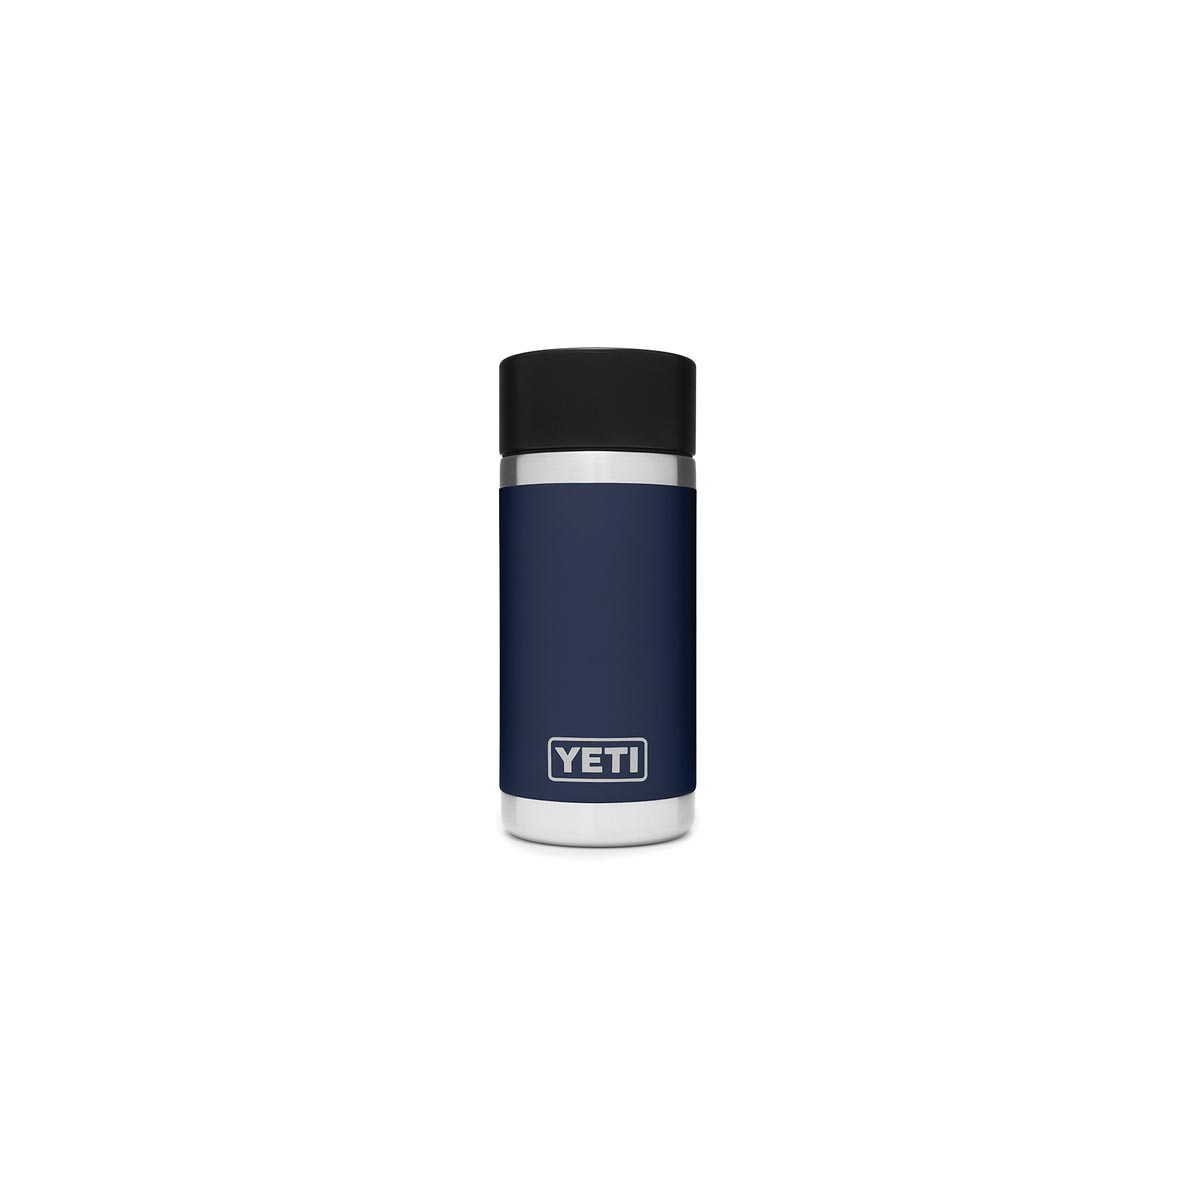 Picture of YETI Rambler 21071050010 Bottle with Hotshot Cap, 12 oz Capacity, Stainless Steel, Navy